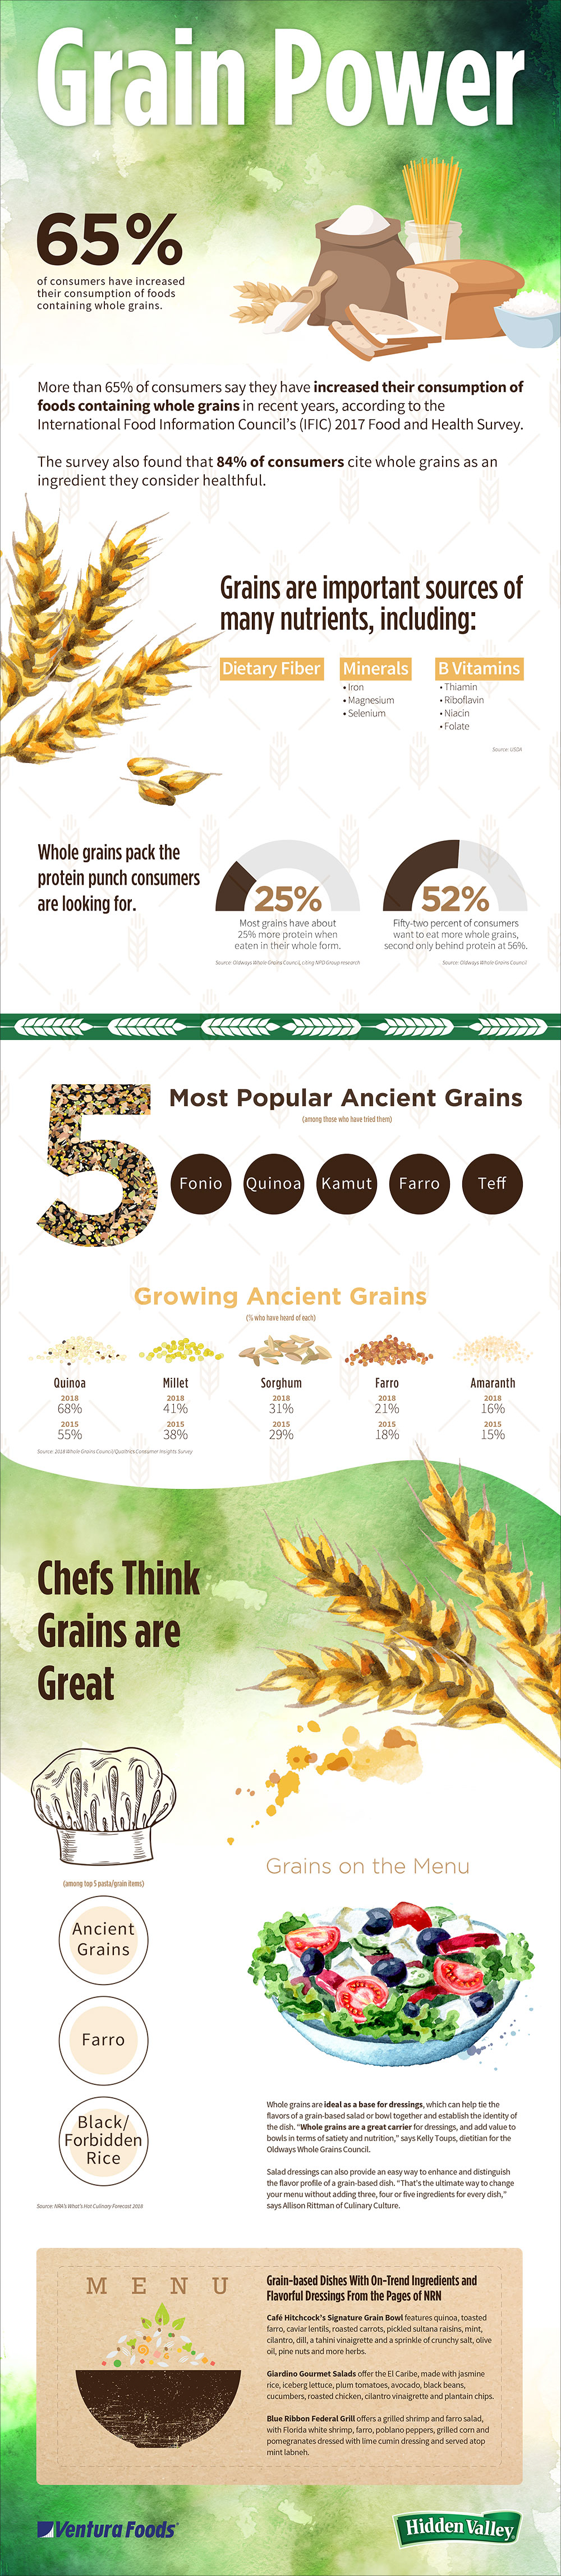 Whole & Ancient Grains: Using Grains to Enhance Bowls & Salads